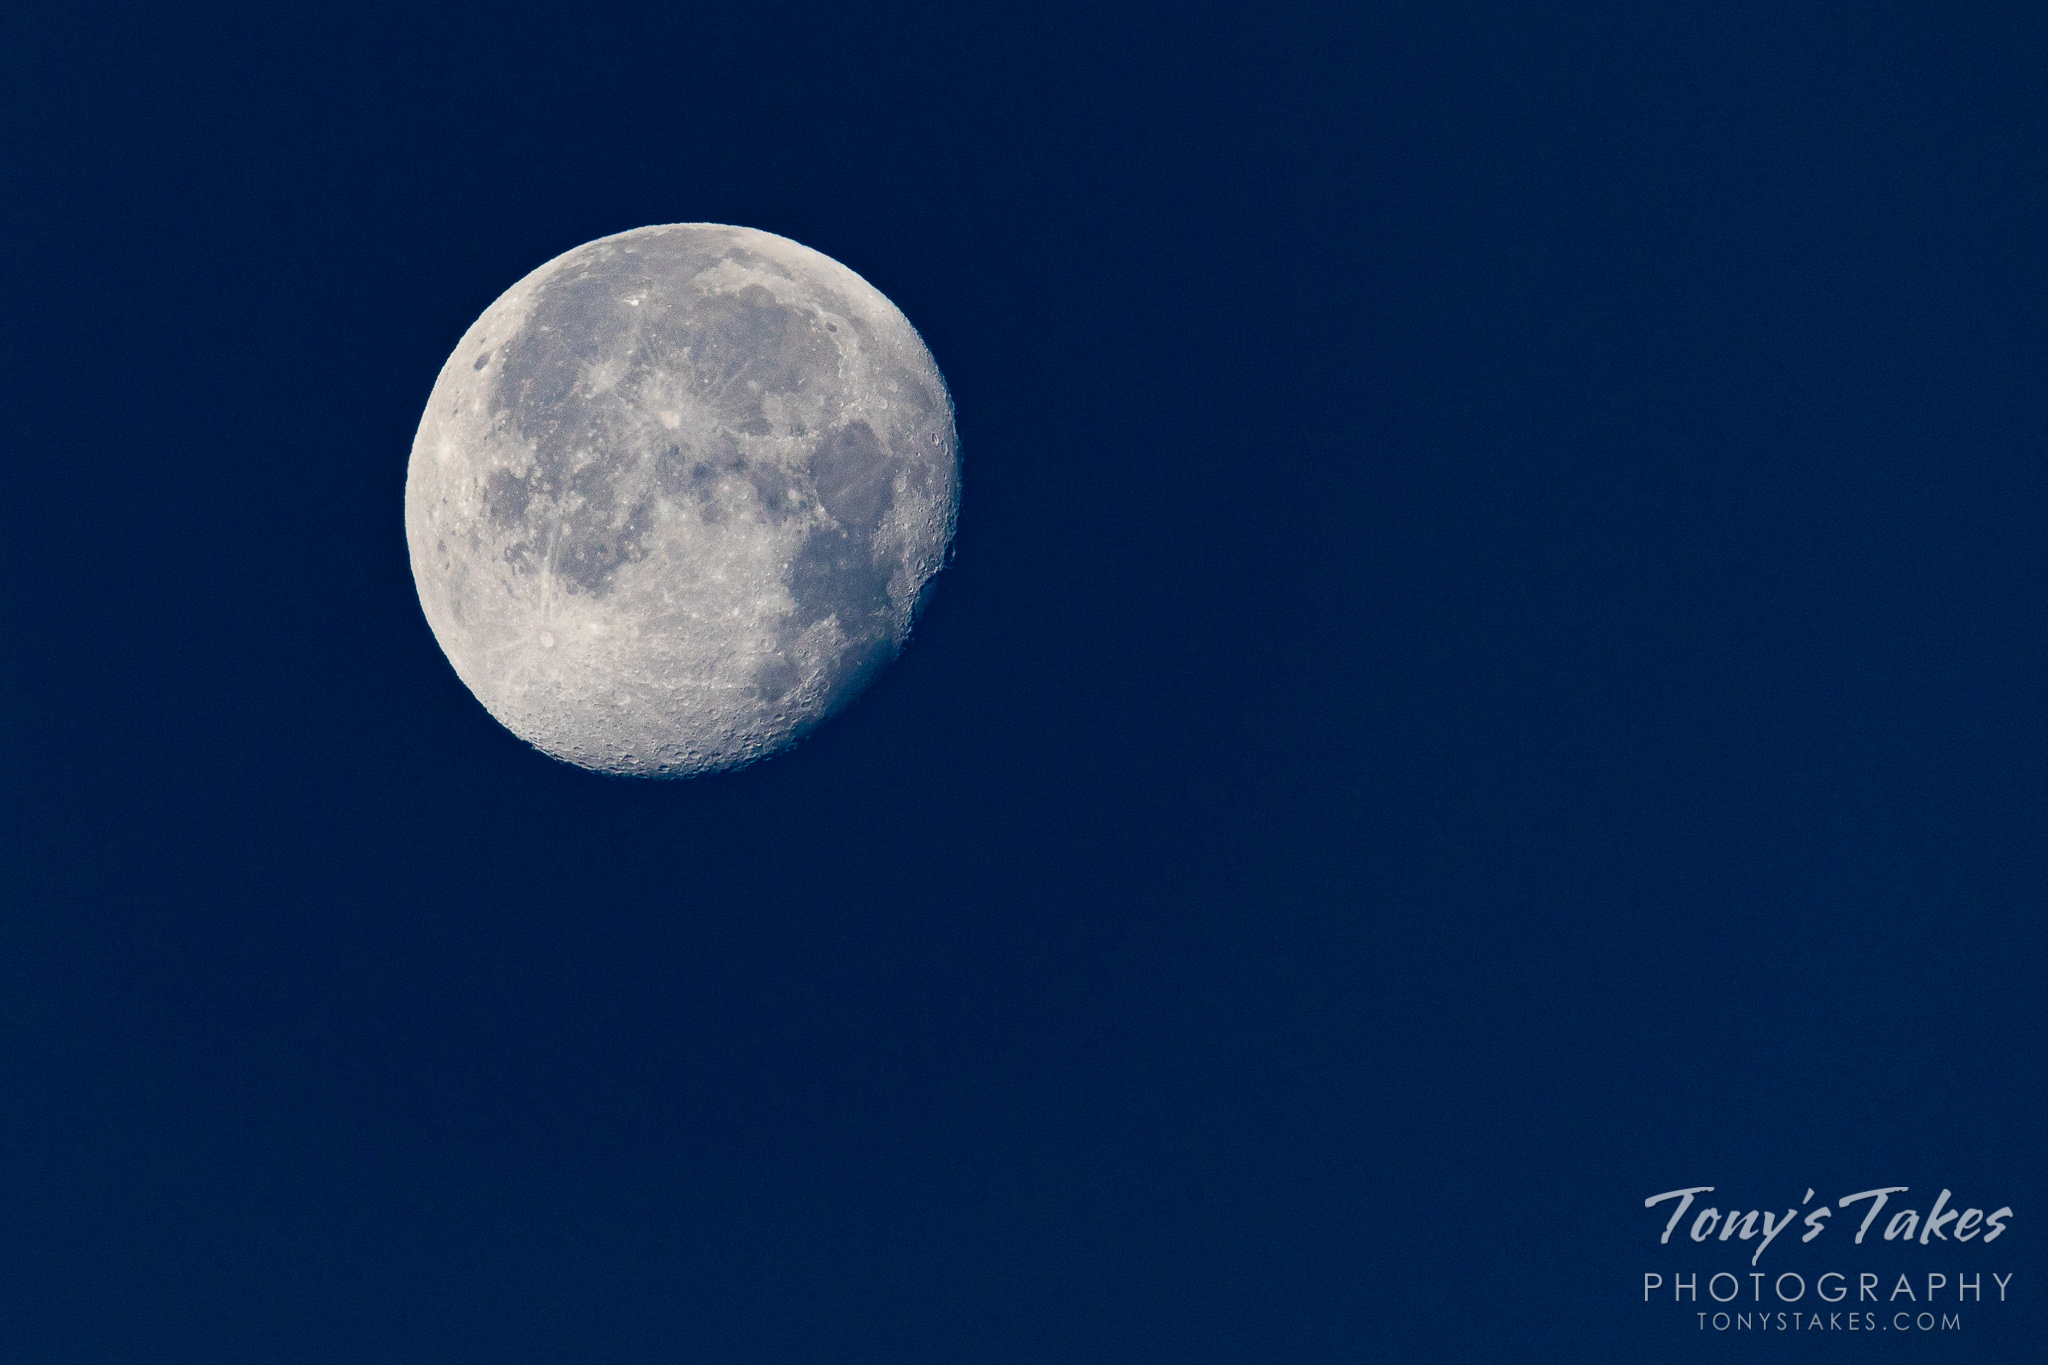 A waning gibbous moon as seen from the Colorado Front Range. (© Tony's Takes)